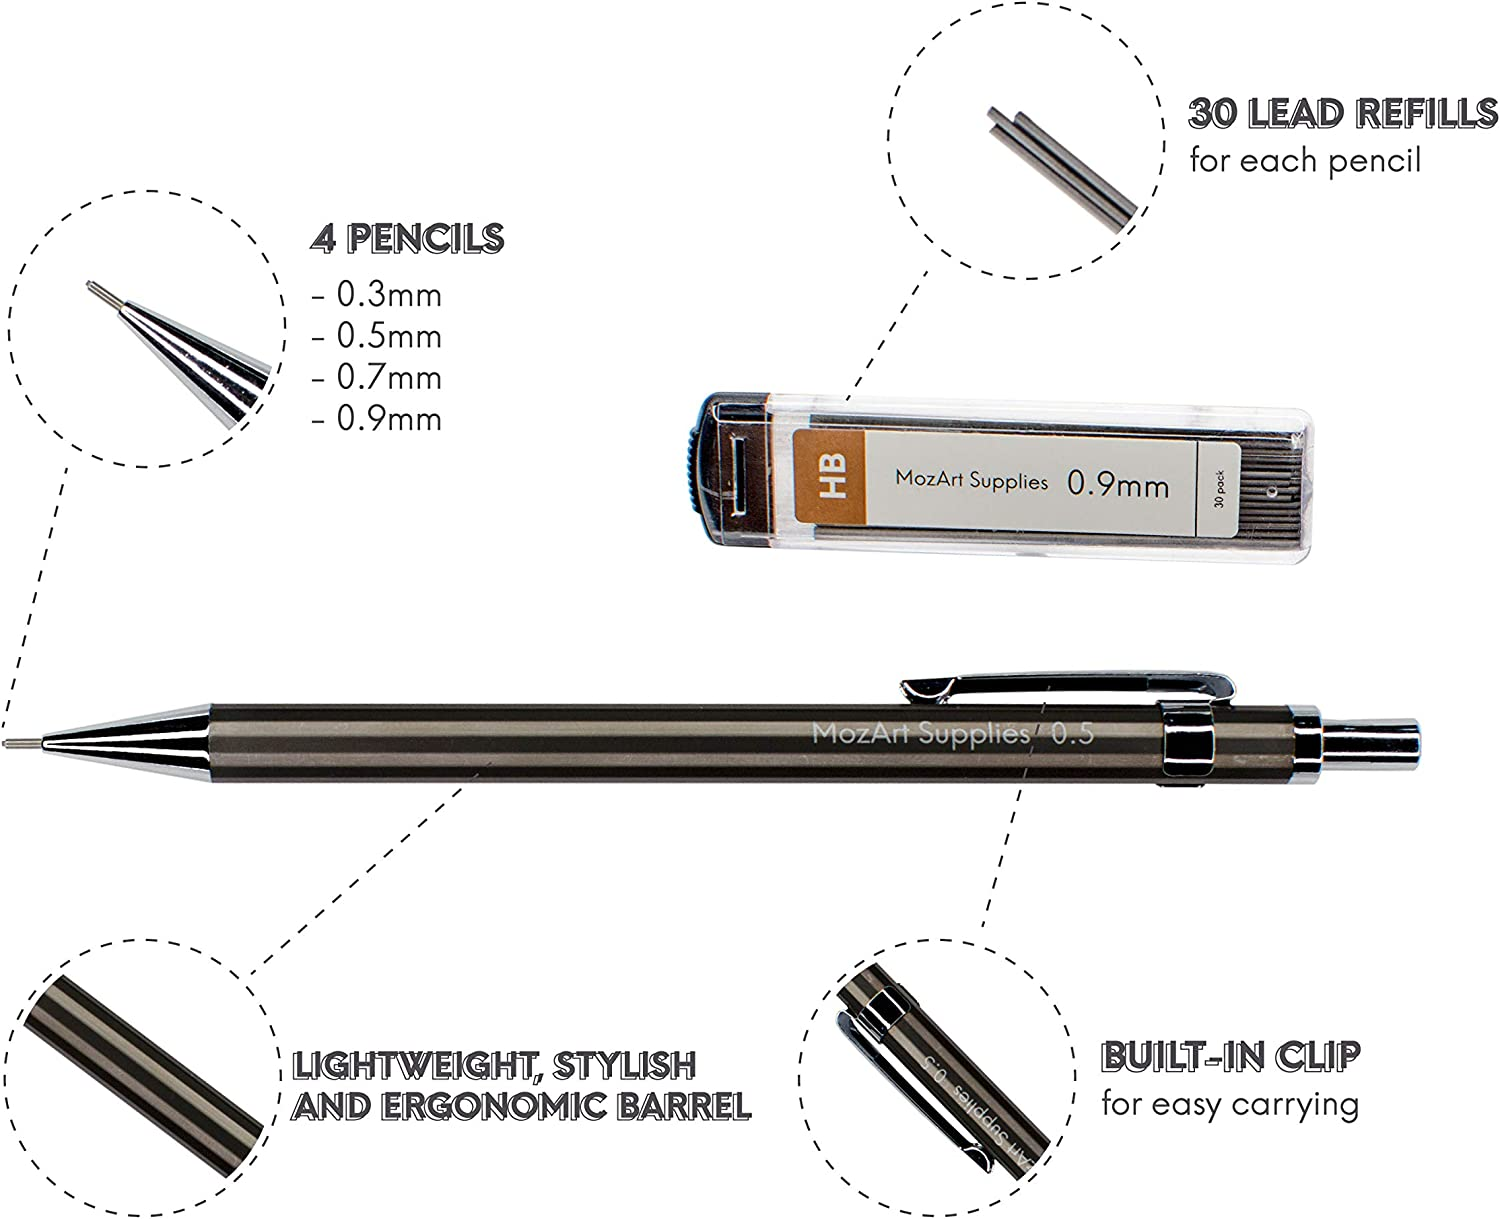 4 Sizes: 0.3 30 HB Lead refills each /& 4 Eraser Refills Sketching 0.5 MozArt Supplies Mechanical Pencil Set with Case Architecture Metal Illustrations 0.7 /& 0.9 mm Drafting